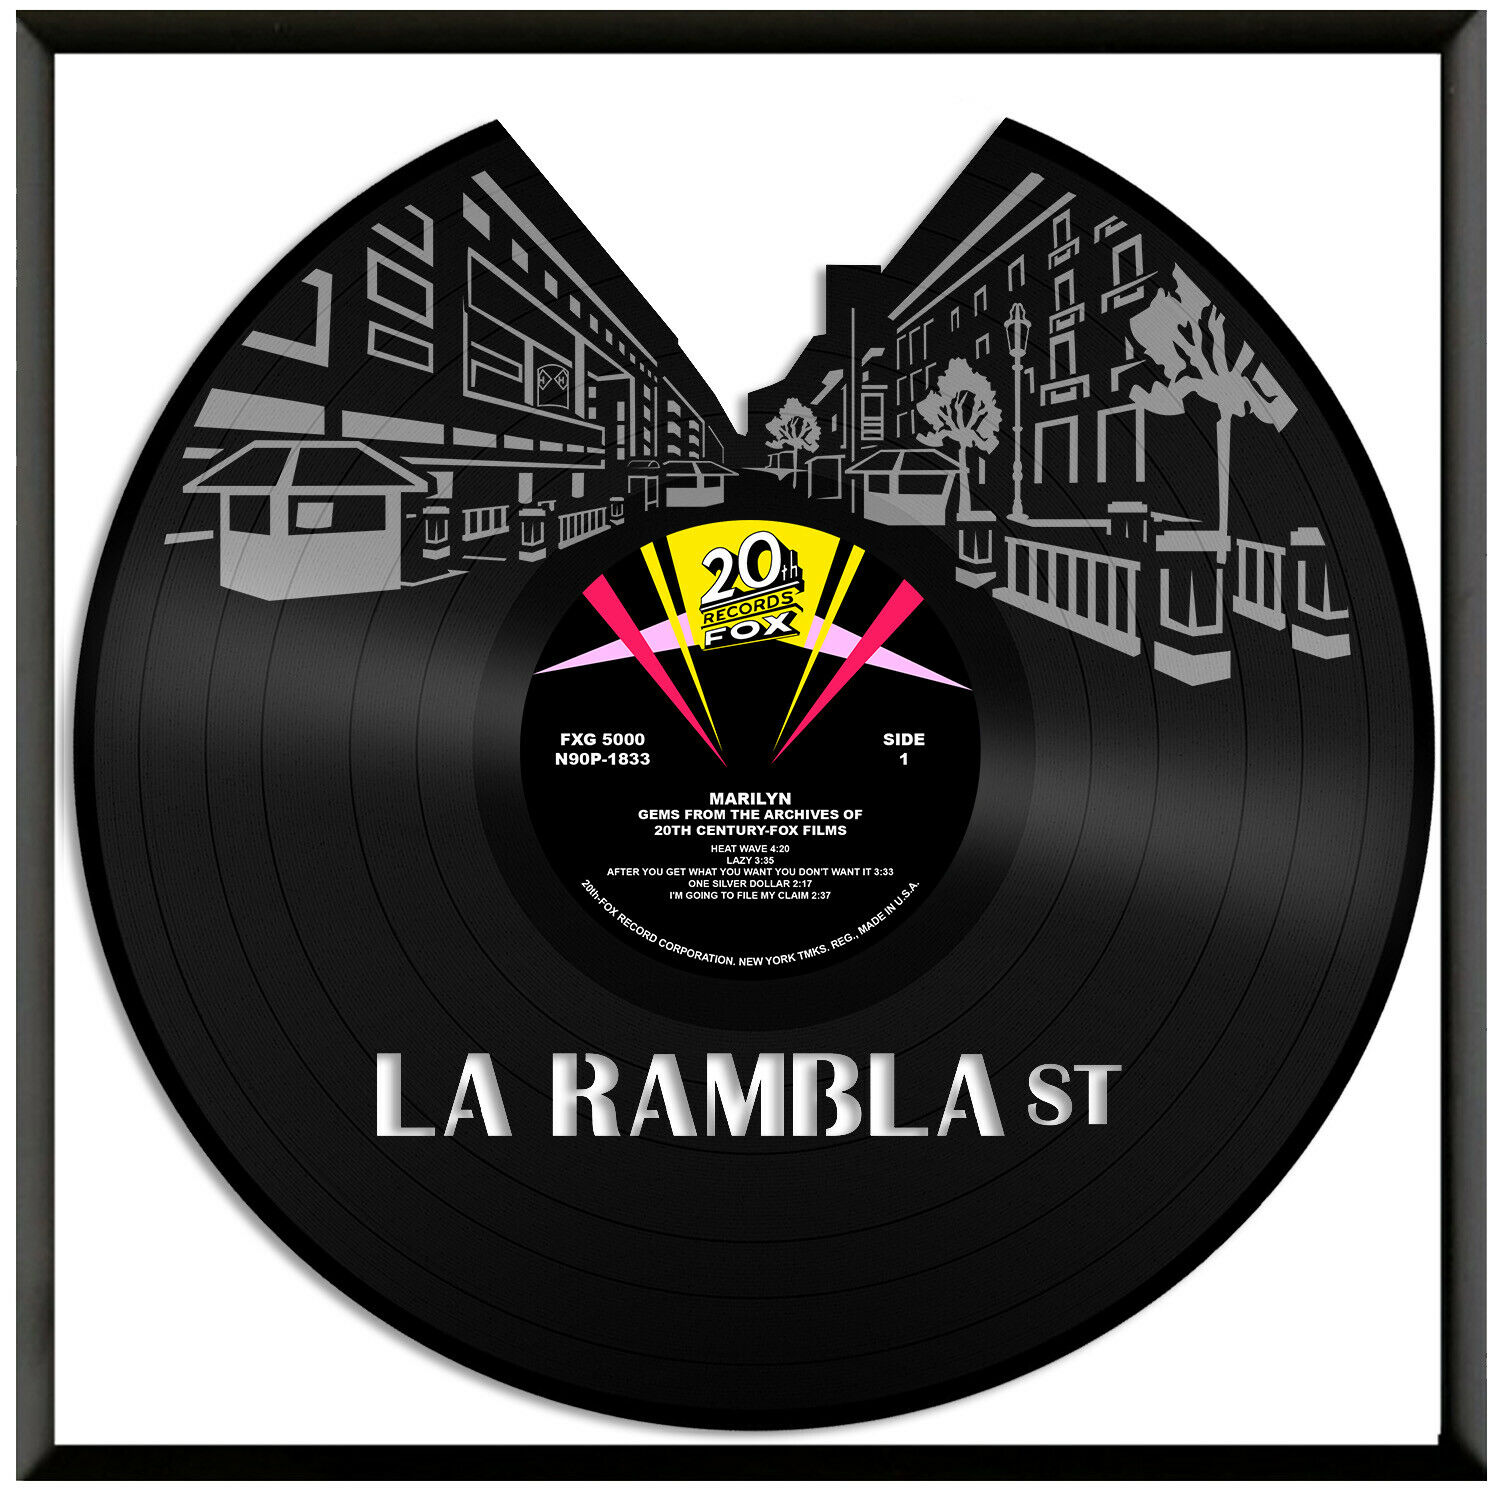 La Rambla ST Vinyl Wall Art Exclusive Gift for Friends Home Decoration Framed